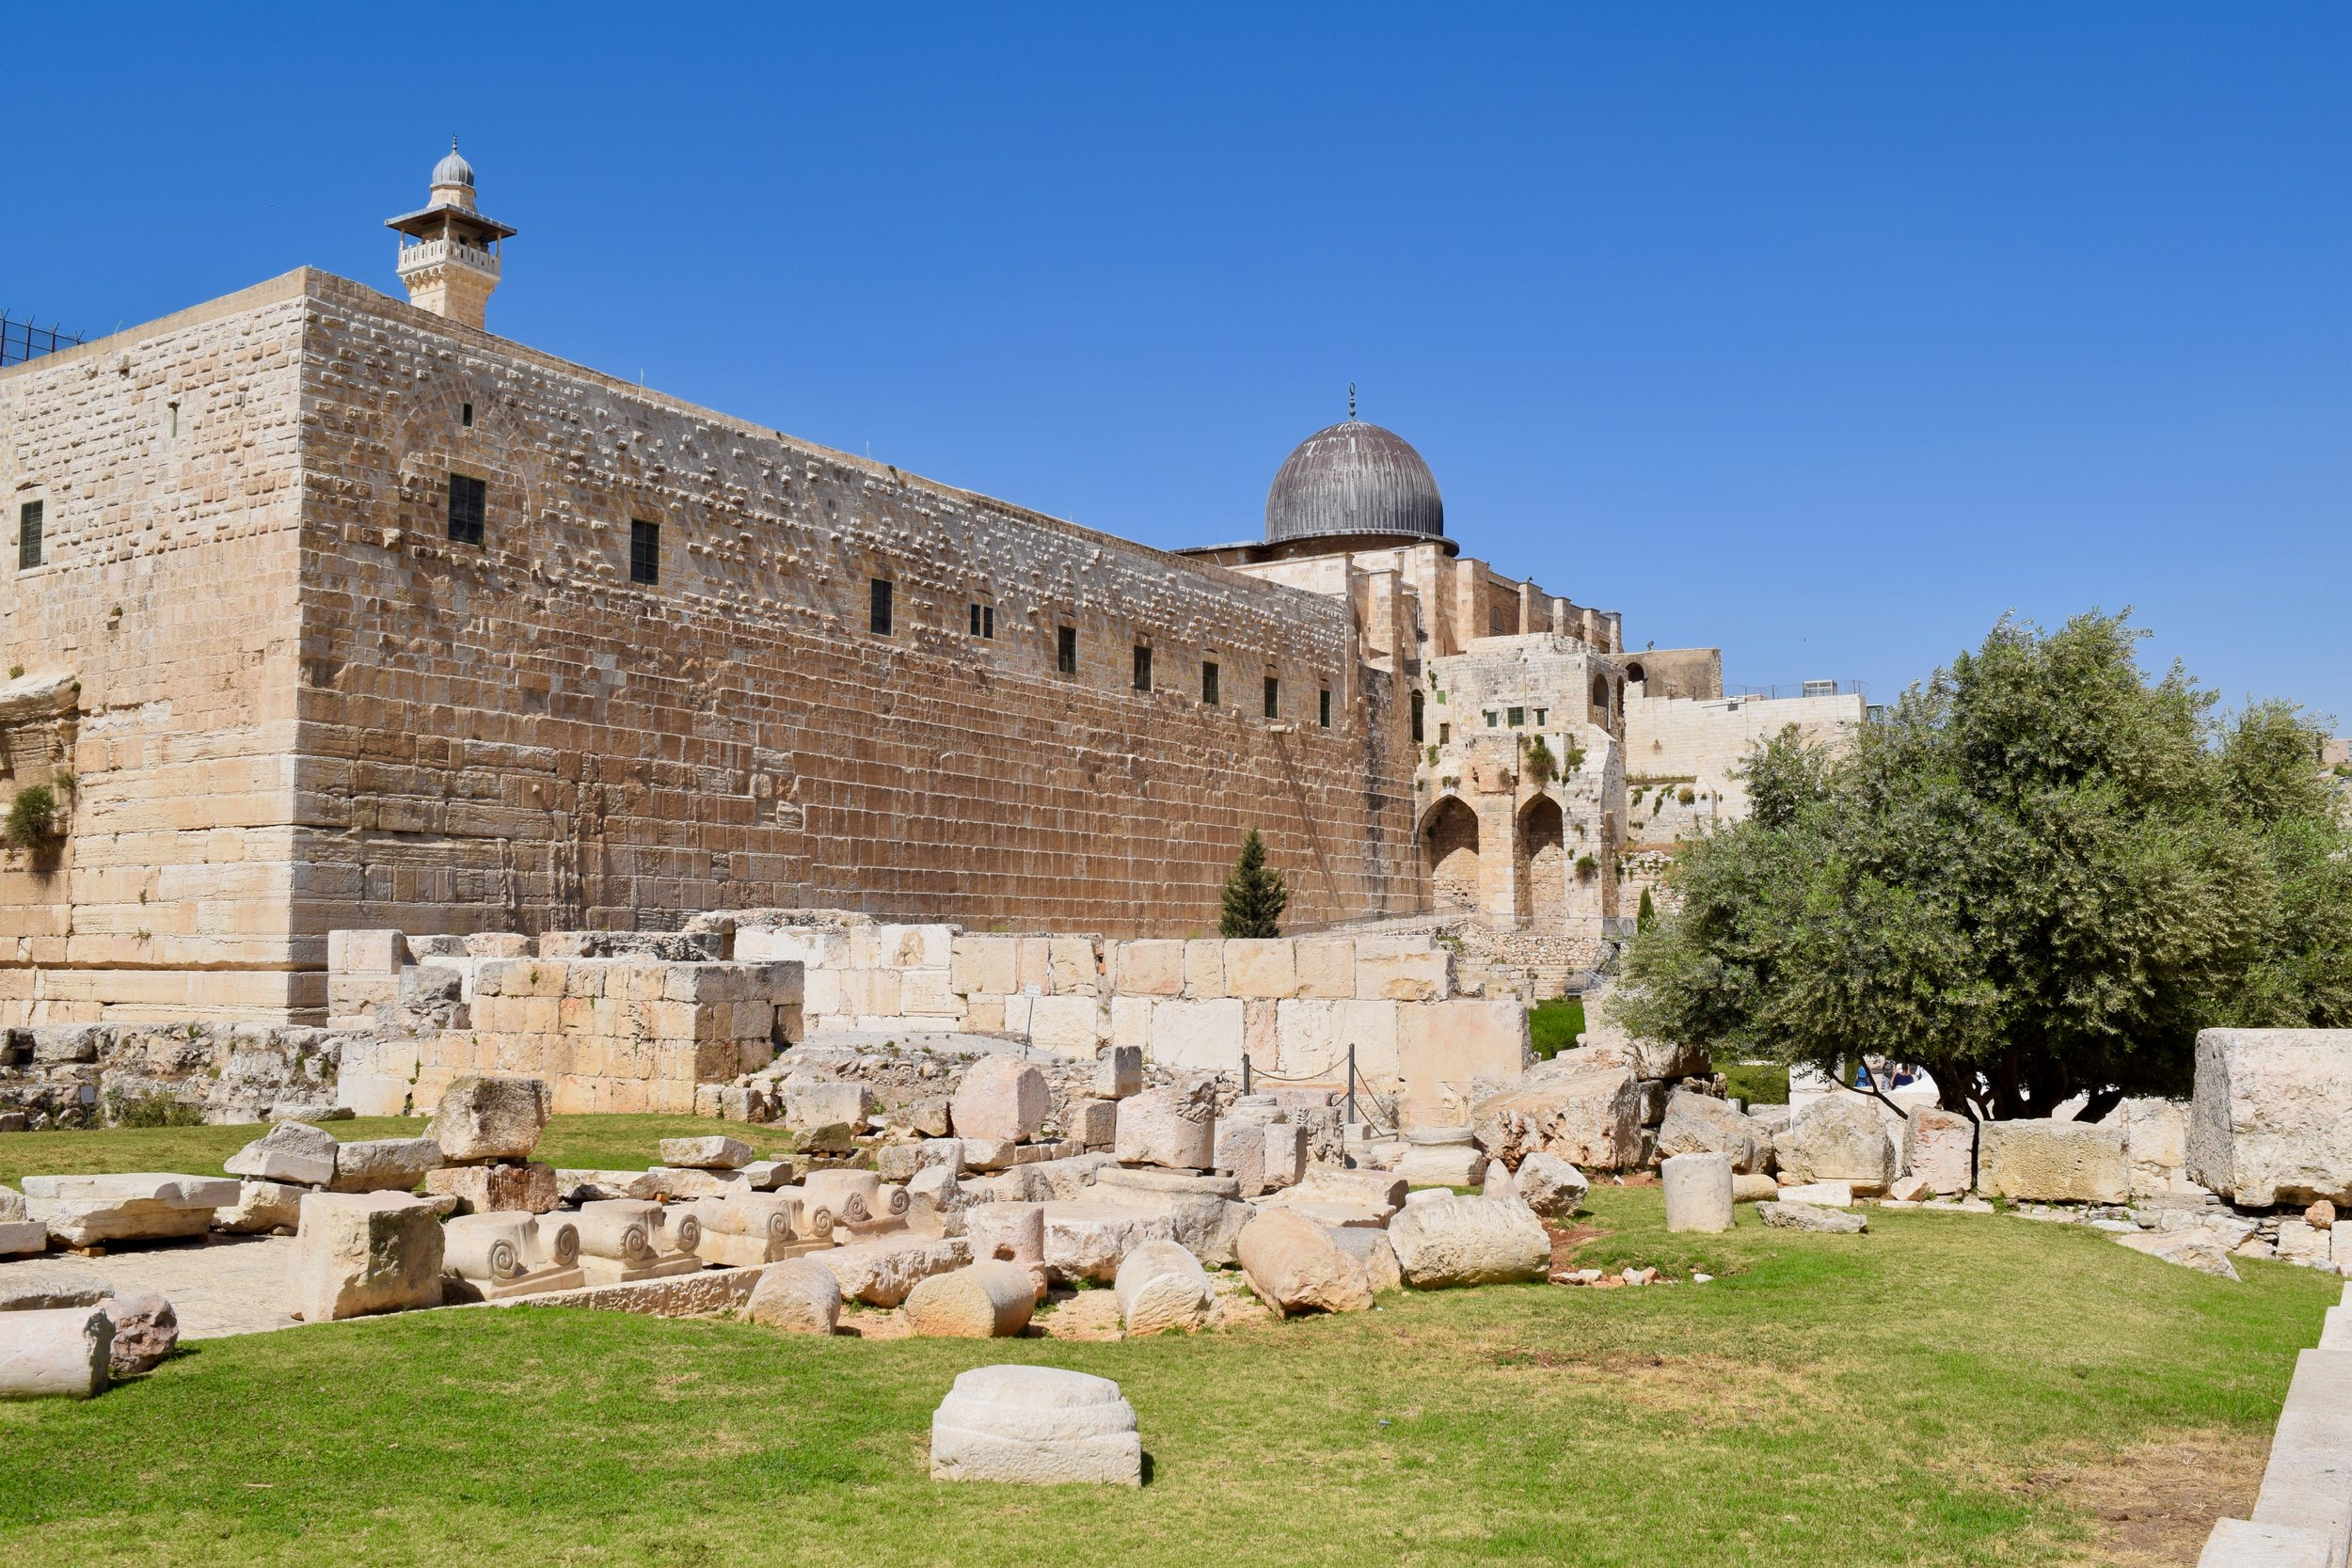 View of Al-Aqsa Mosque from the City of David